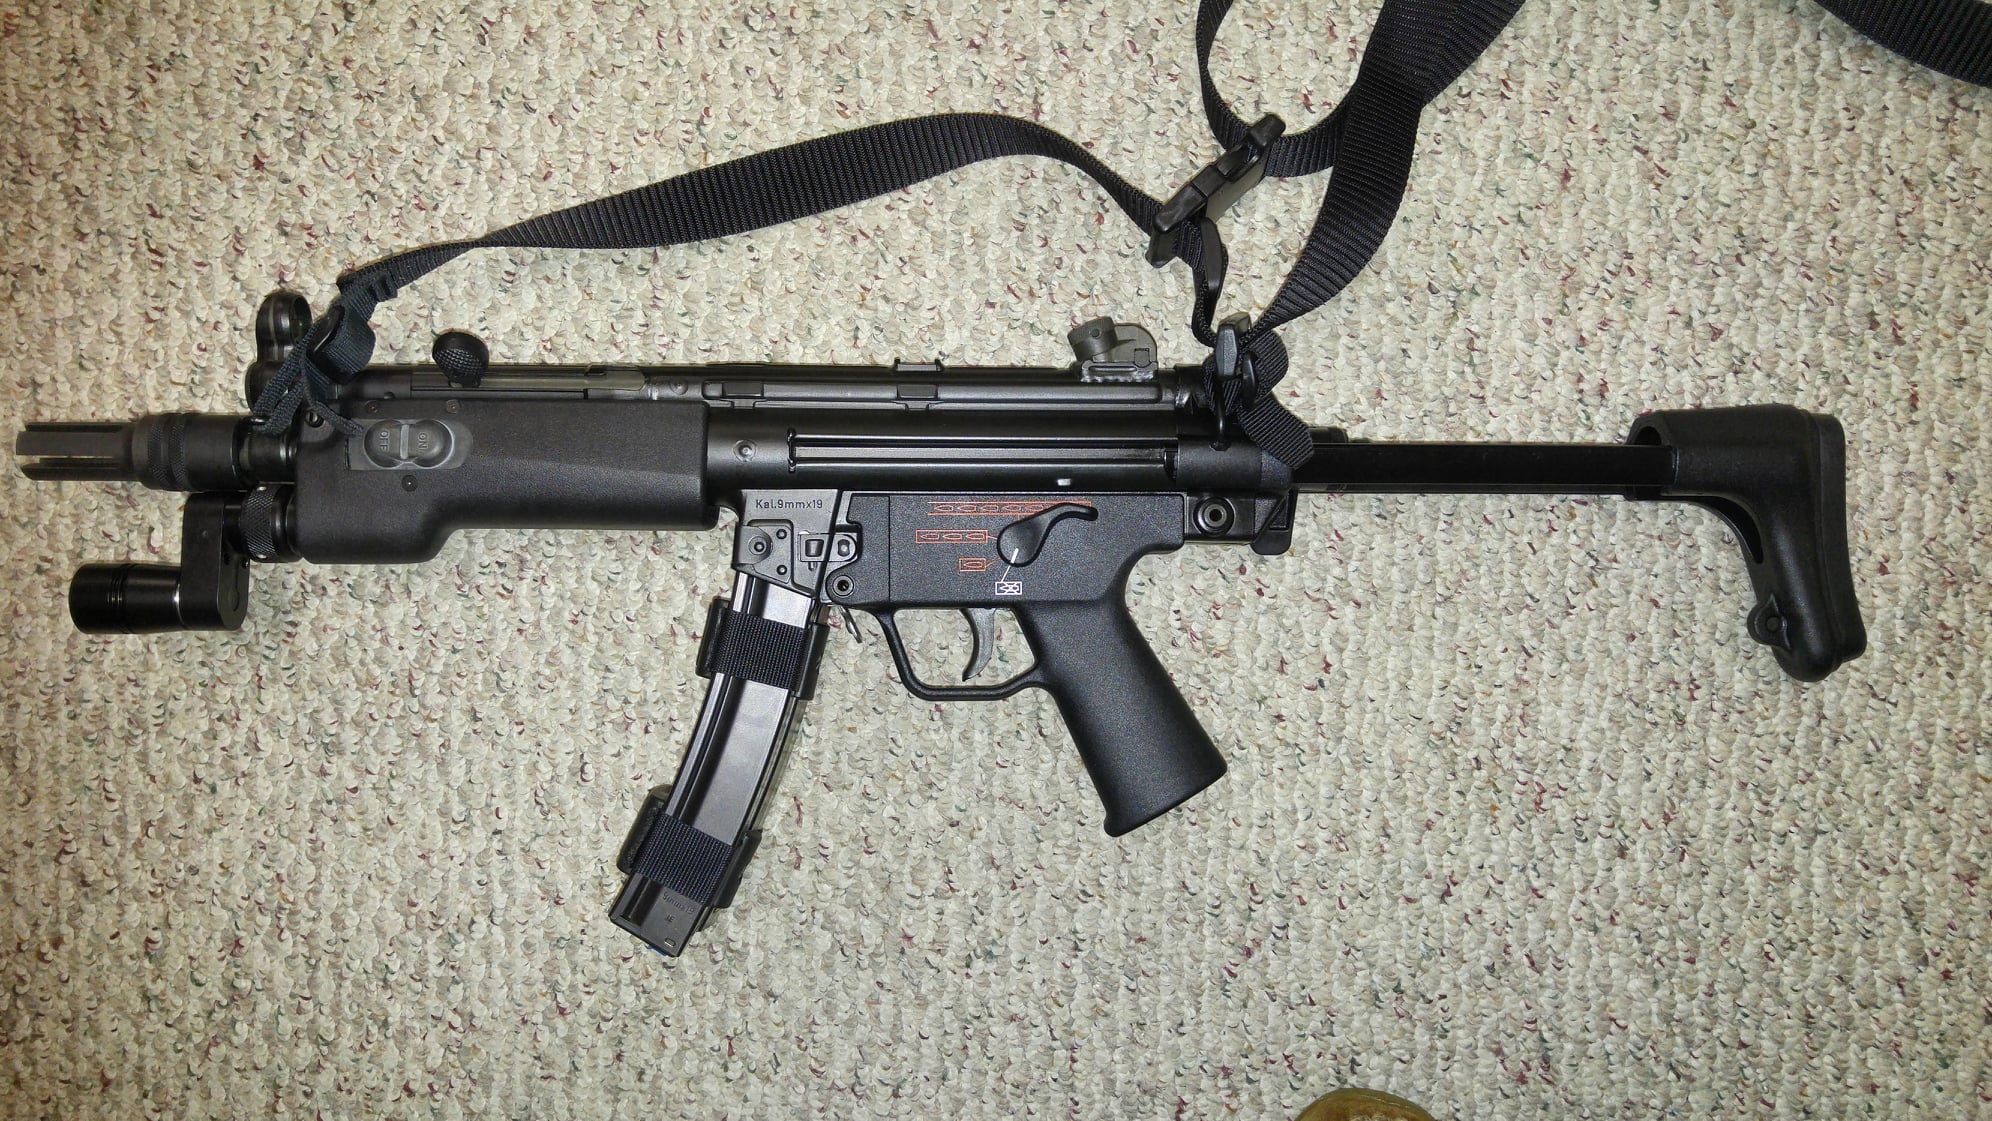 Let's talk Surefire forends for the SP5 I'll hopefully soon be getting-mp5.jpg